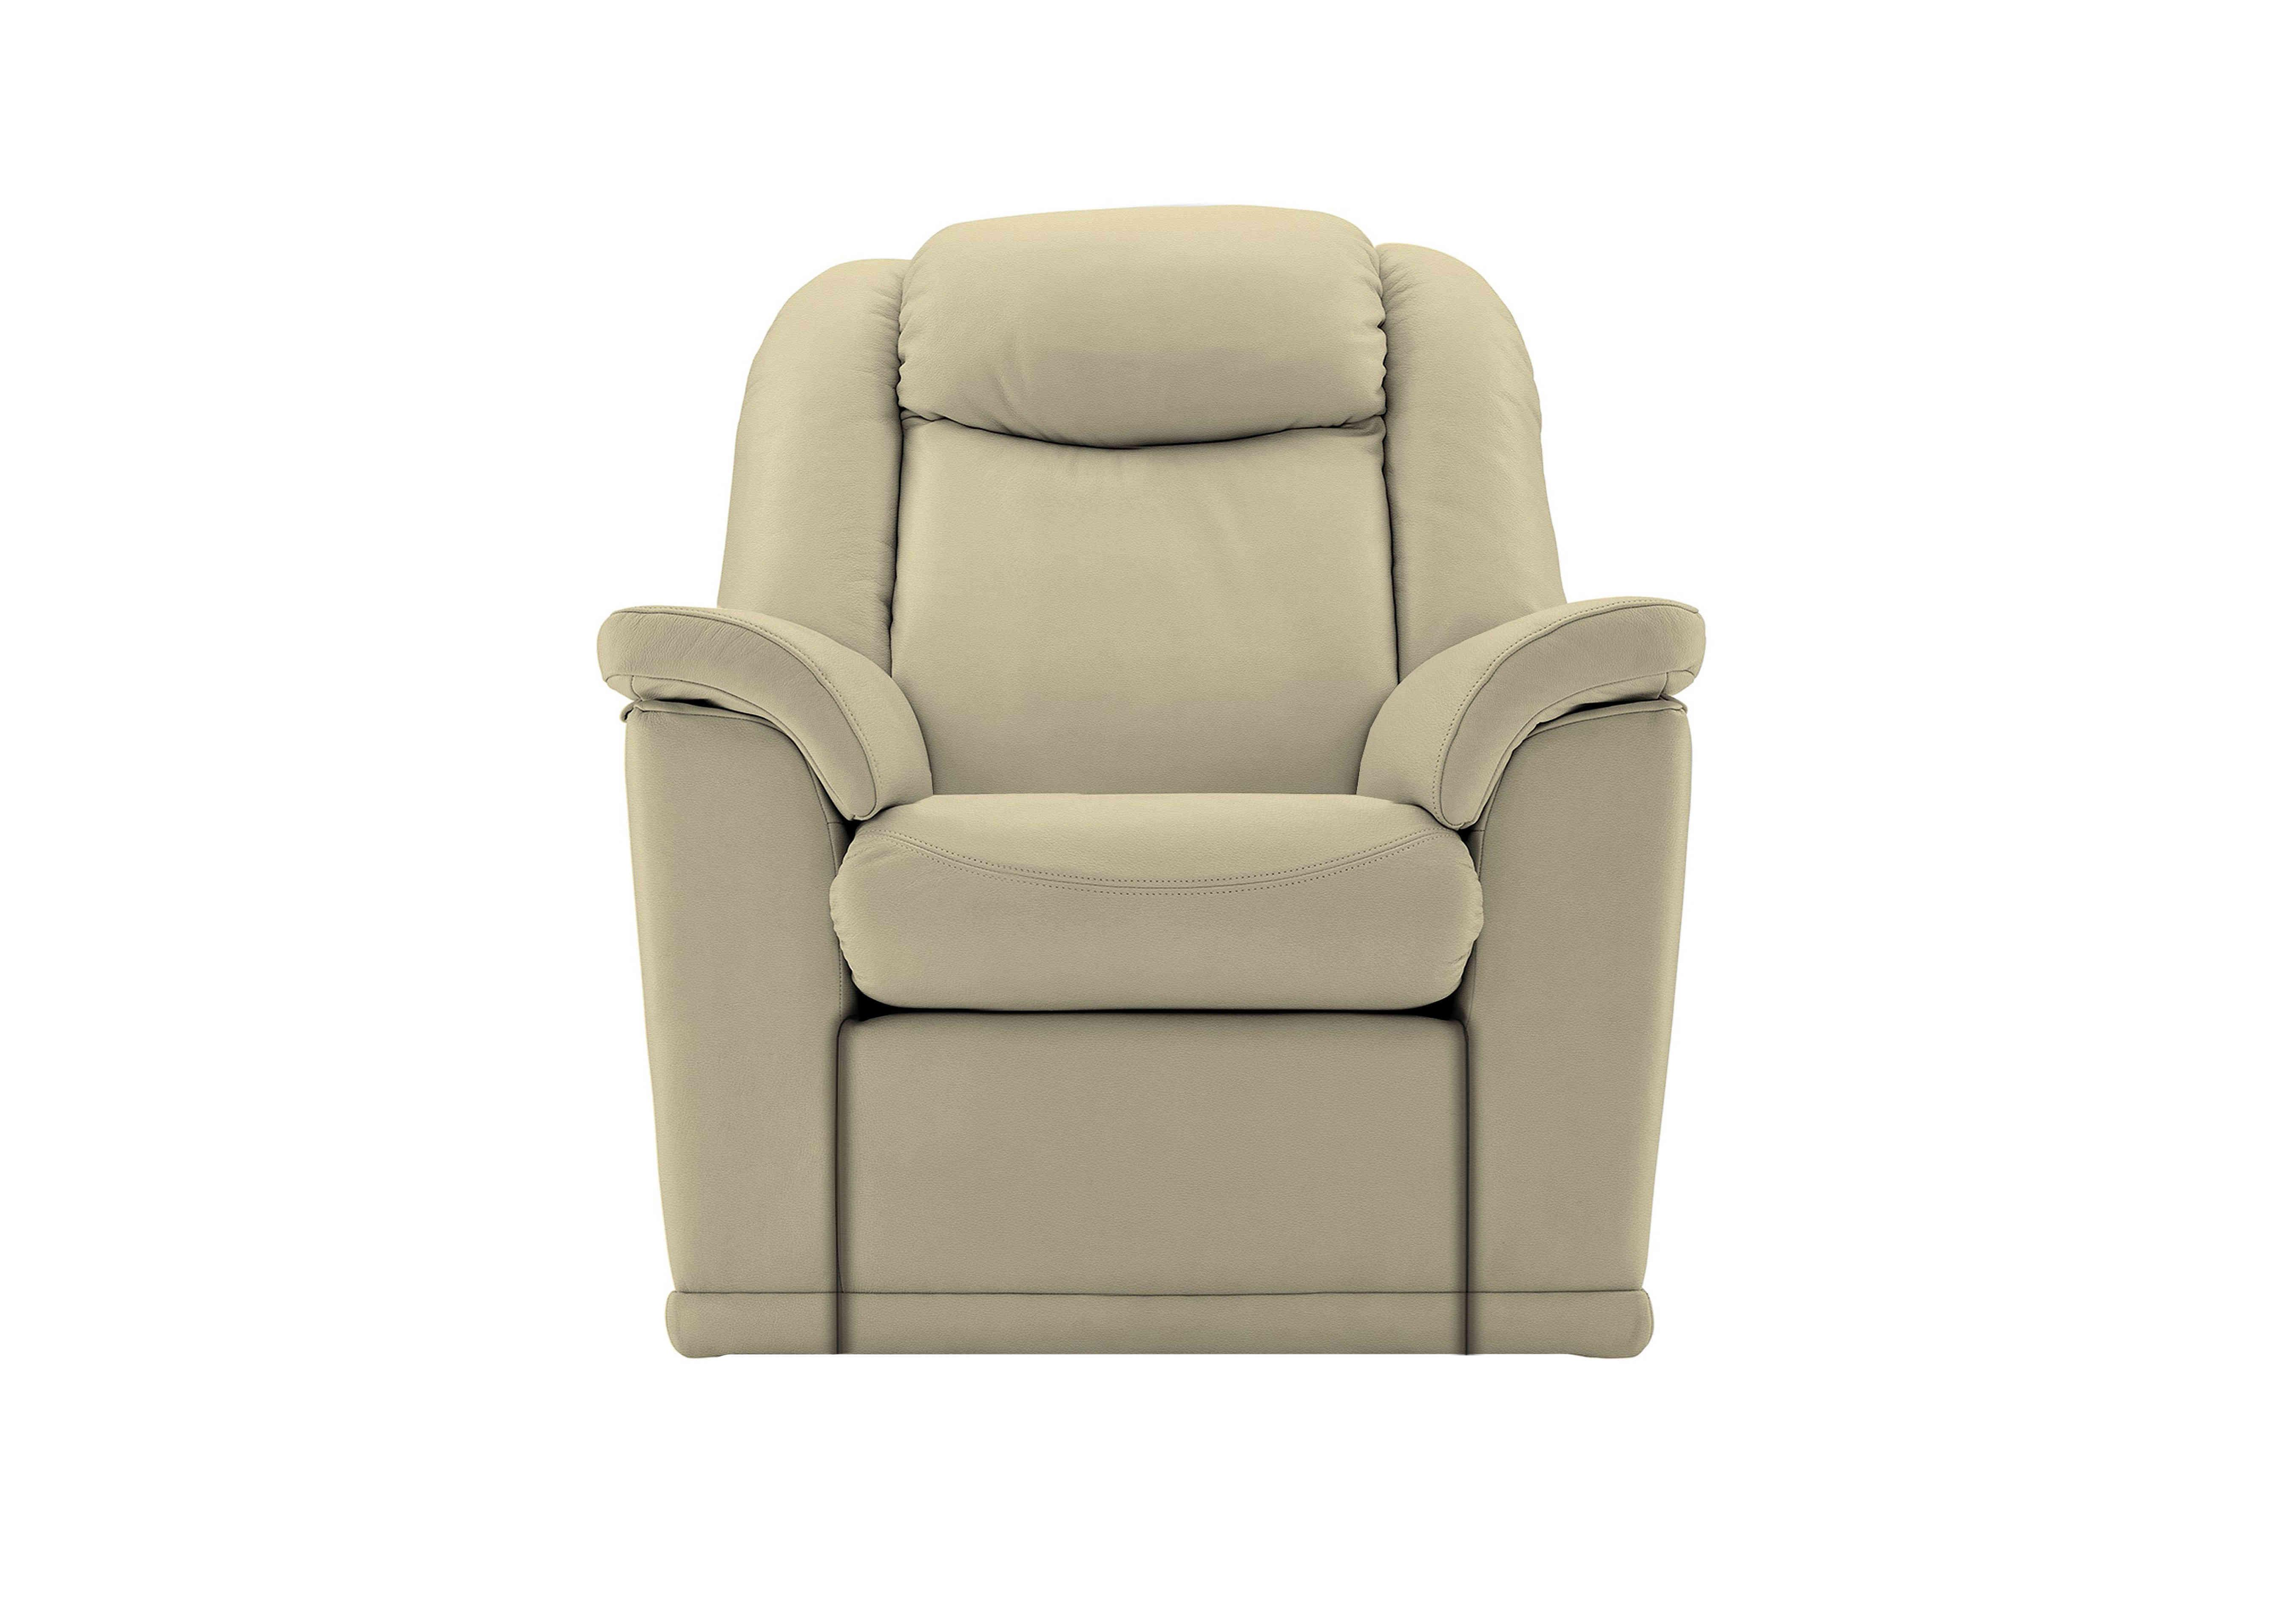 Save £604  sc 1 st  Furniture Village & Recliner armchairs - Furniture Village islam-shia.org